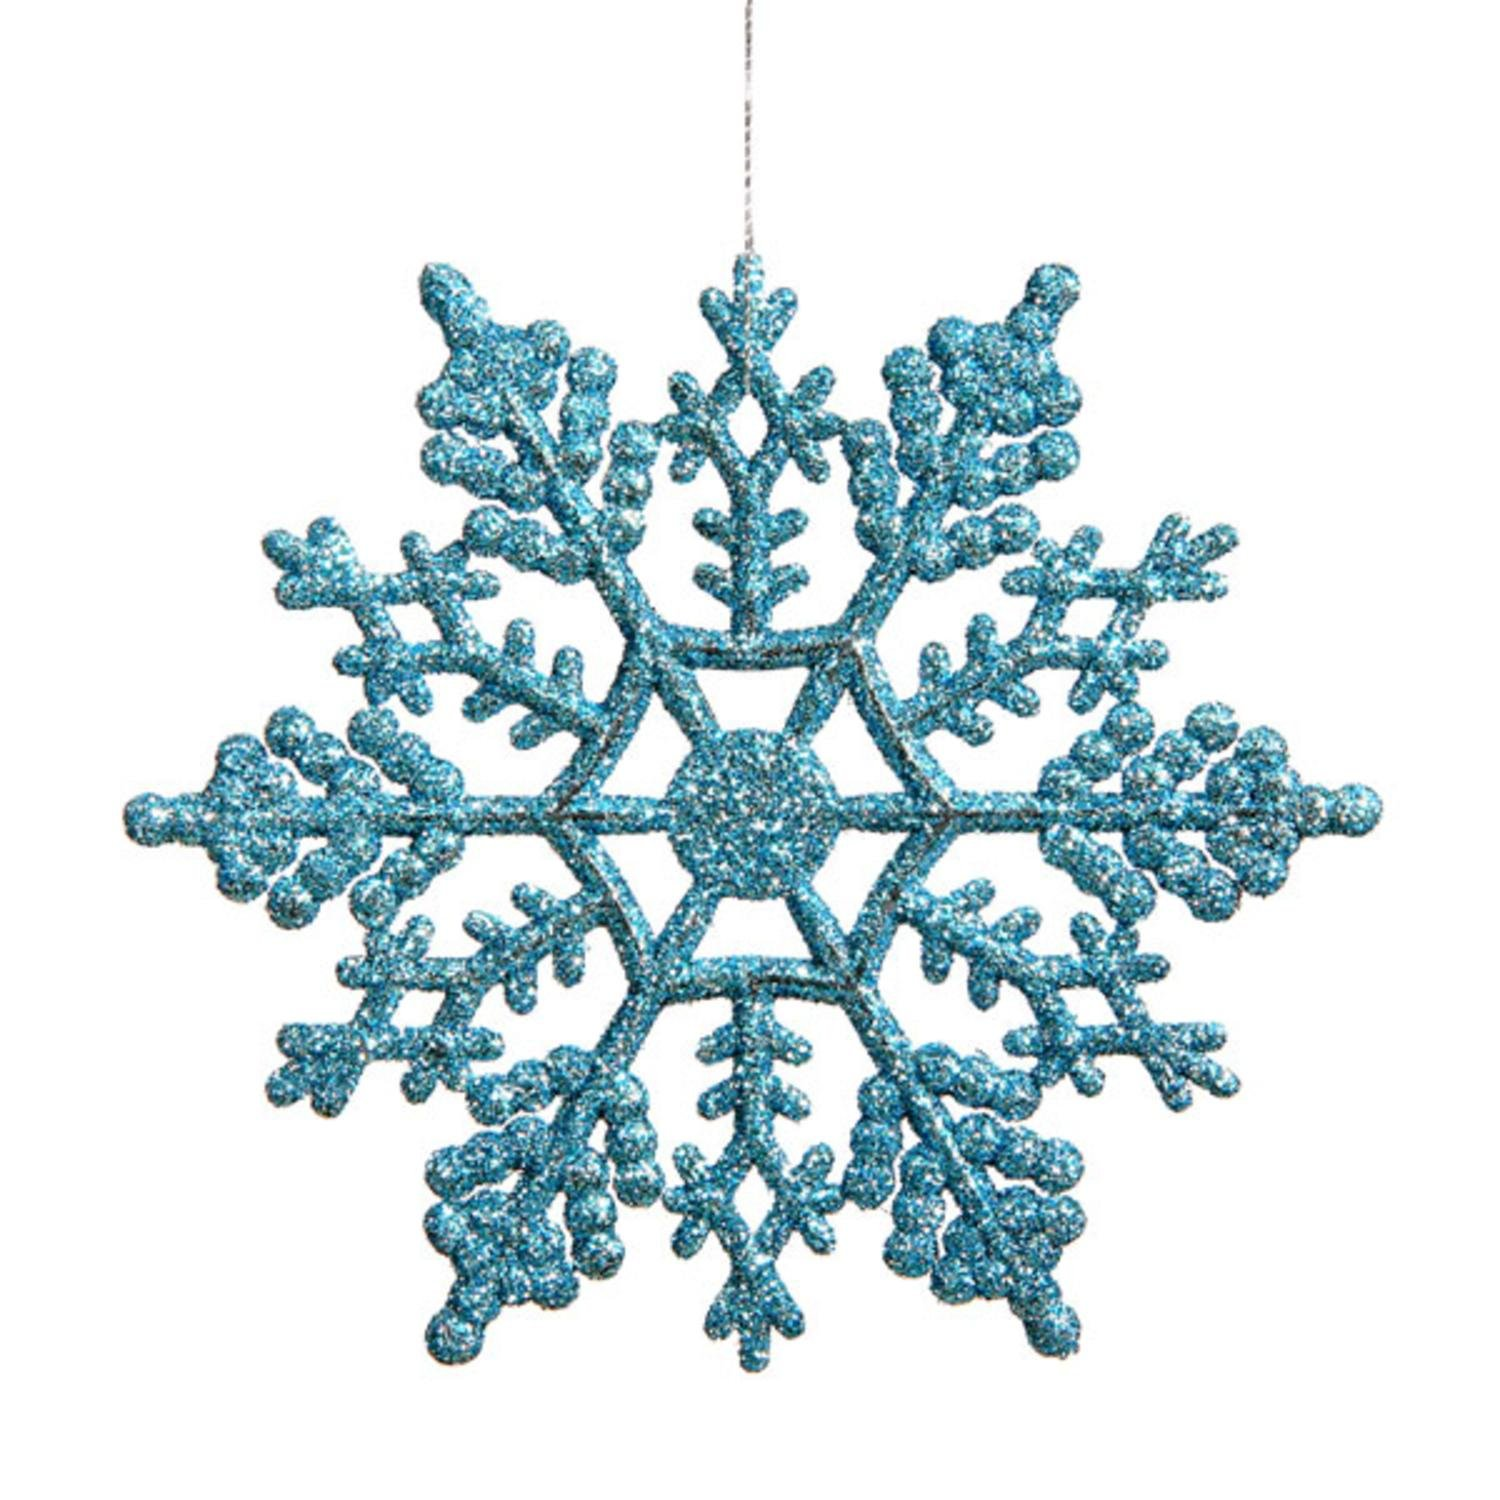 Amazon.com: Club Pack of 24 Turquoise Blue Glitter Snowflake ...